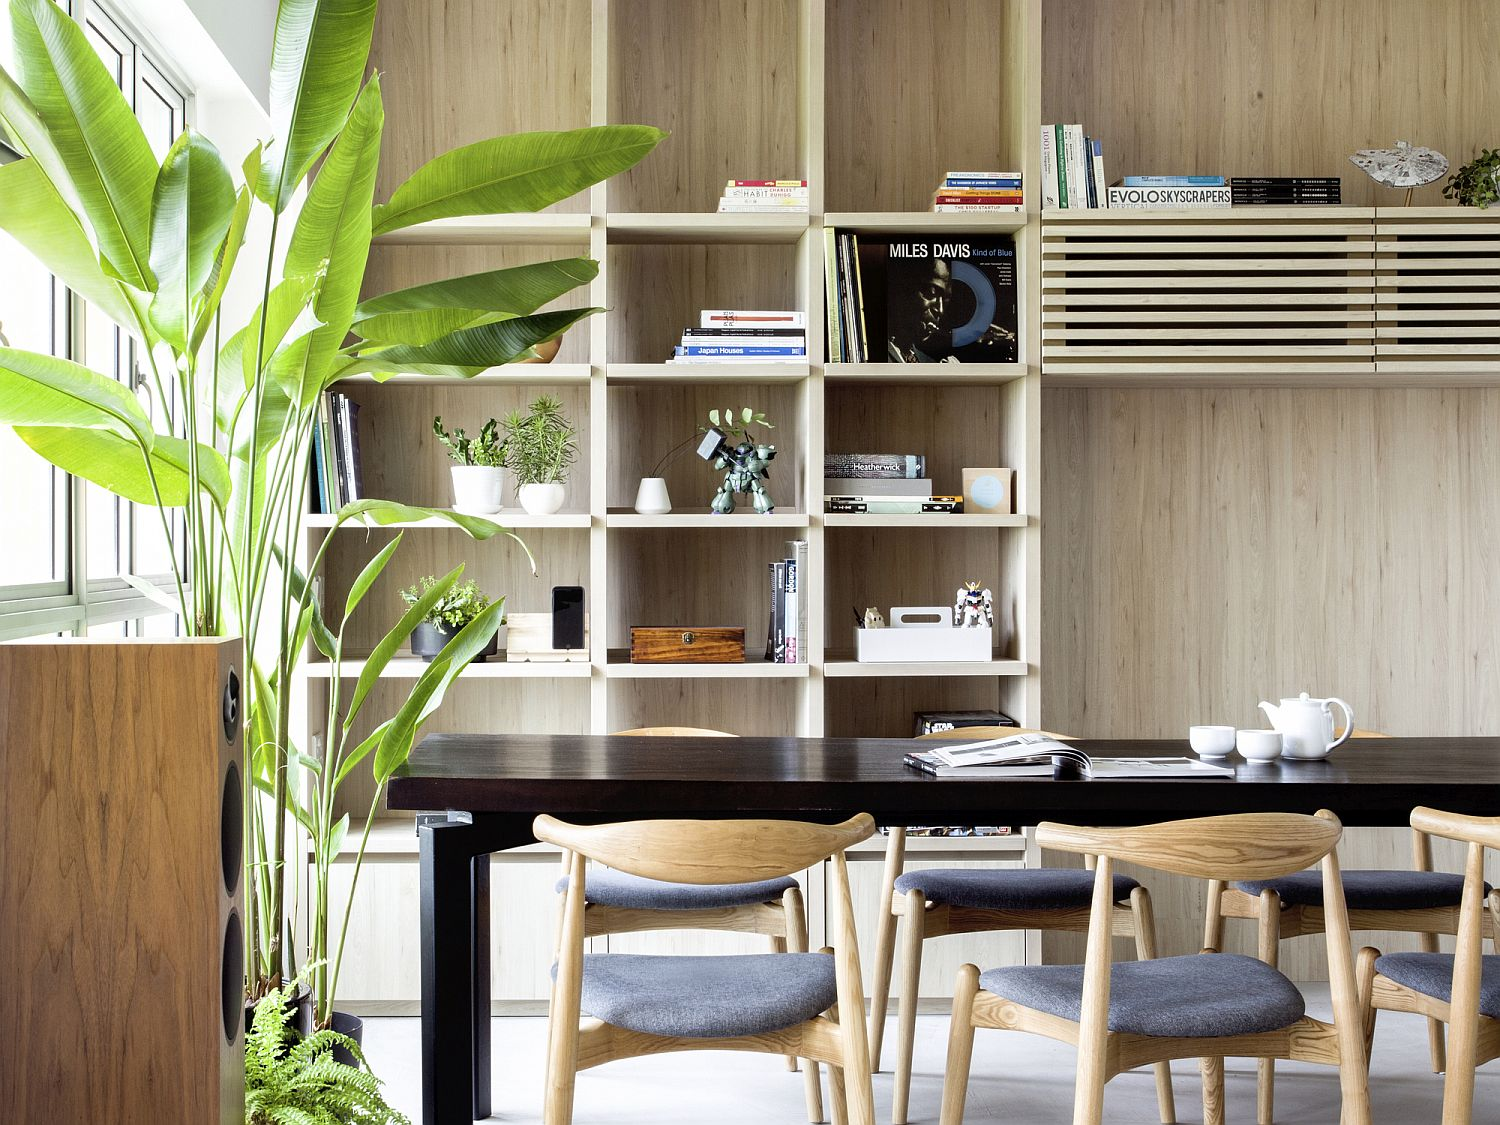 Turn-the-wooden-partitions-in-shelves-for-multi-tasking-ease